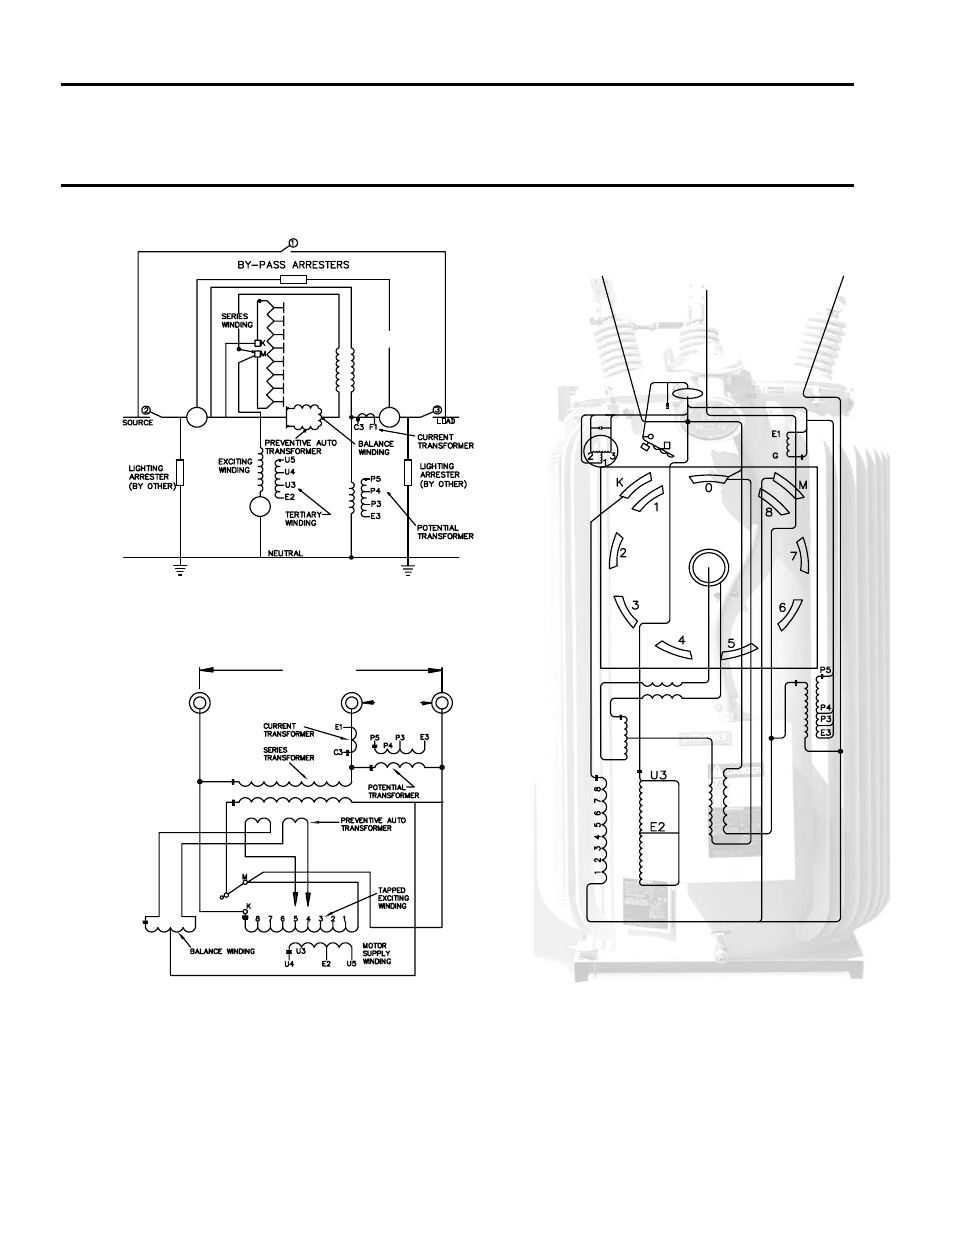 connection diagrams  series transformer design